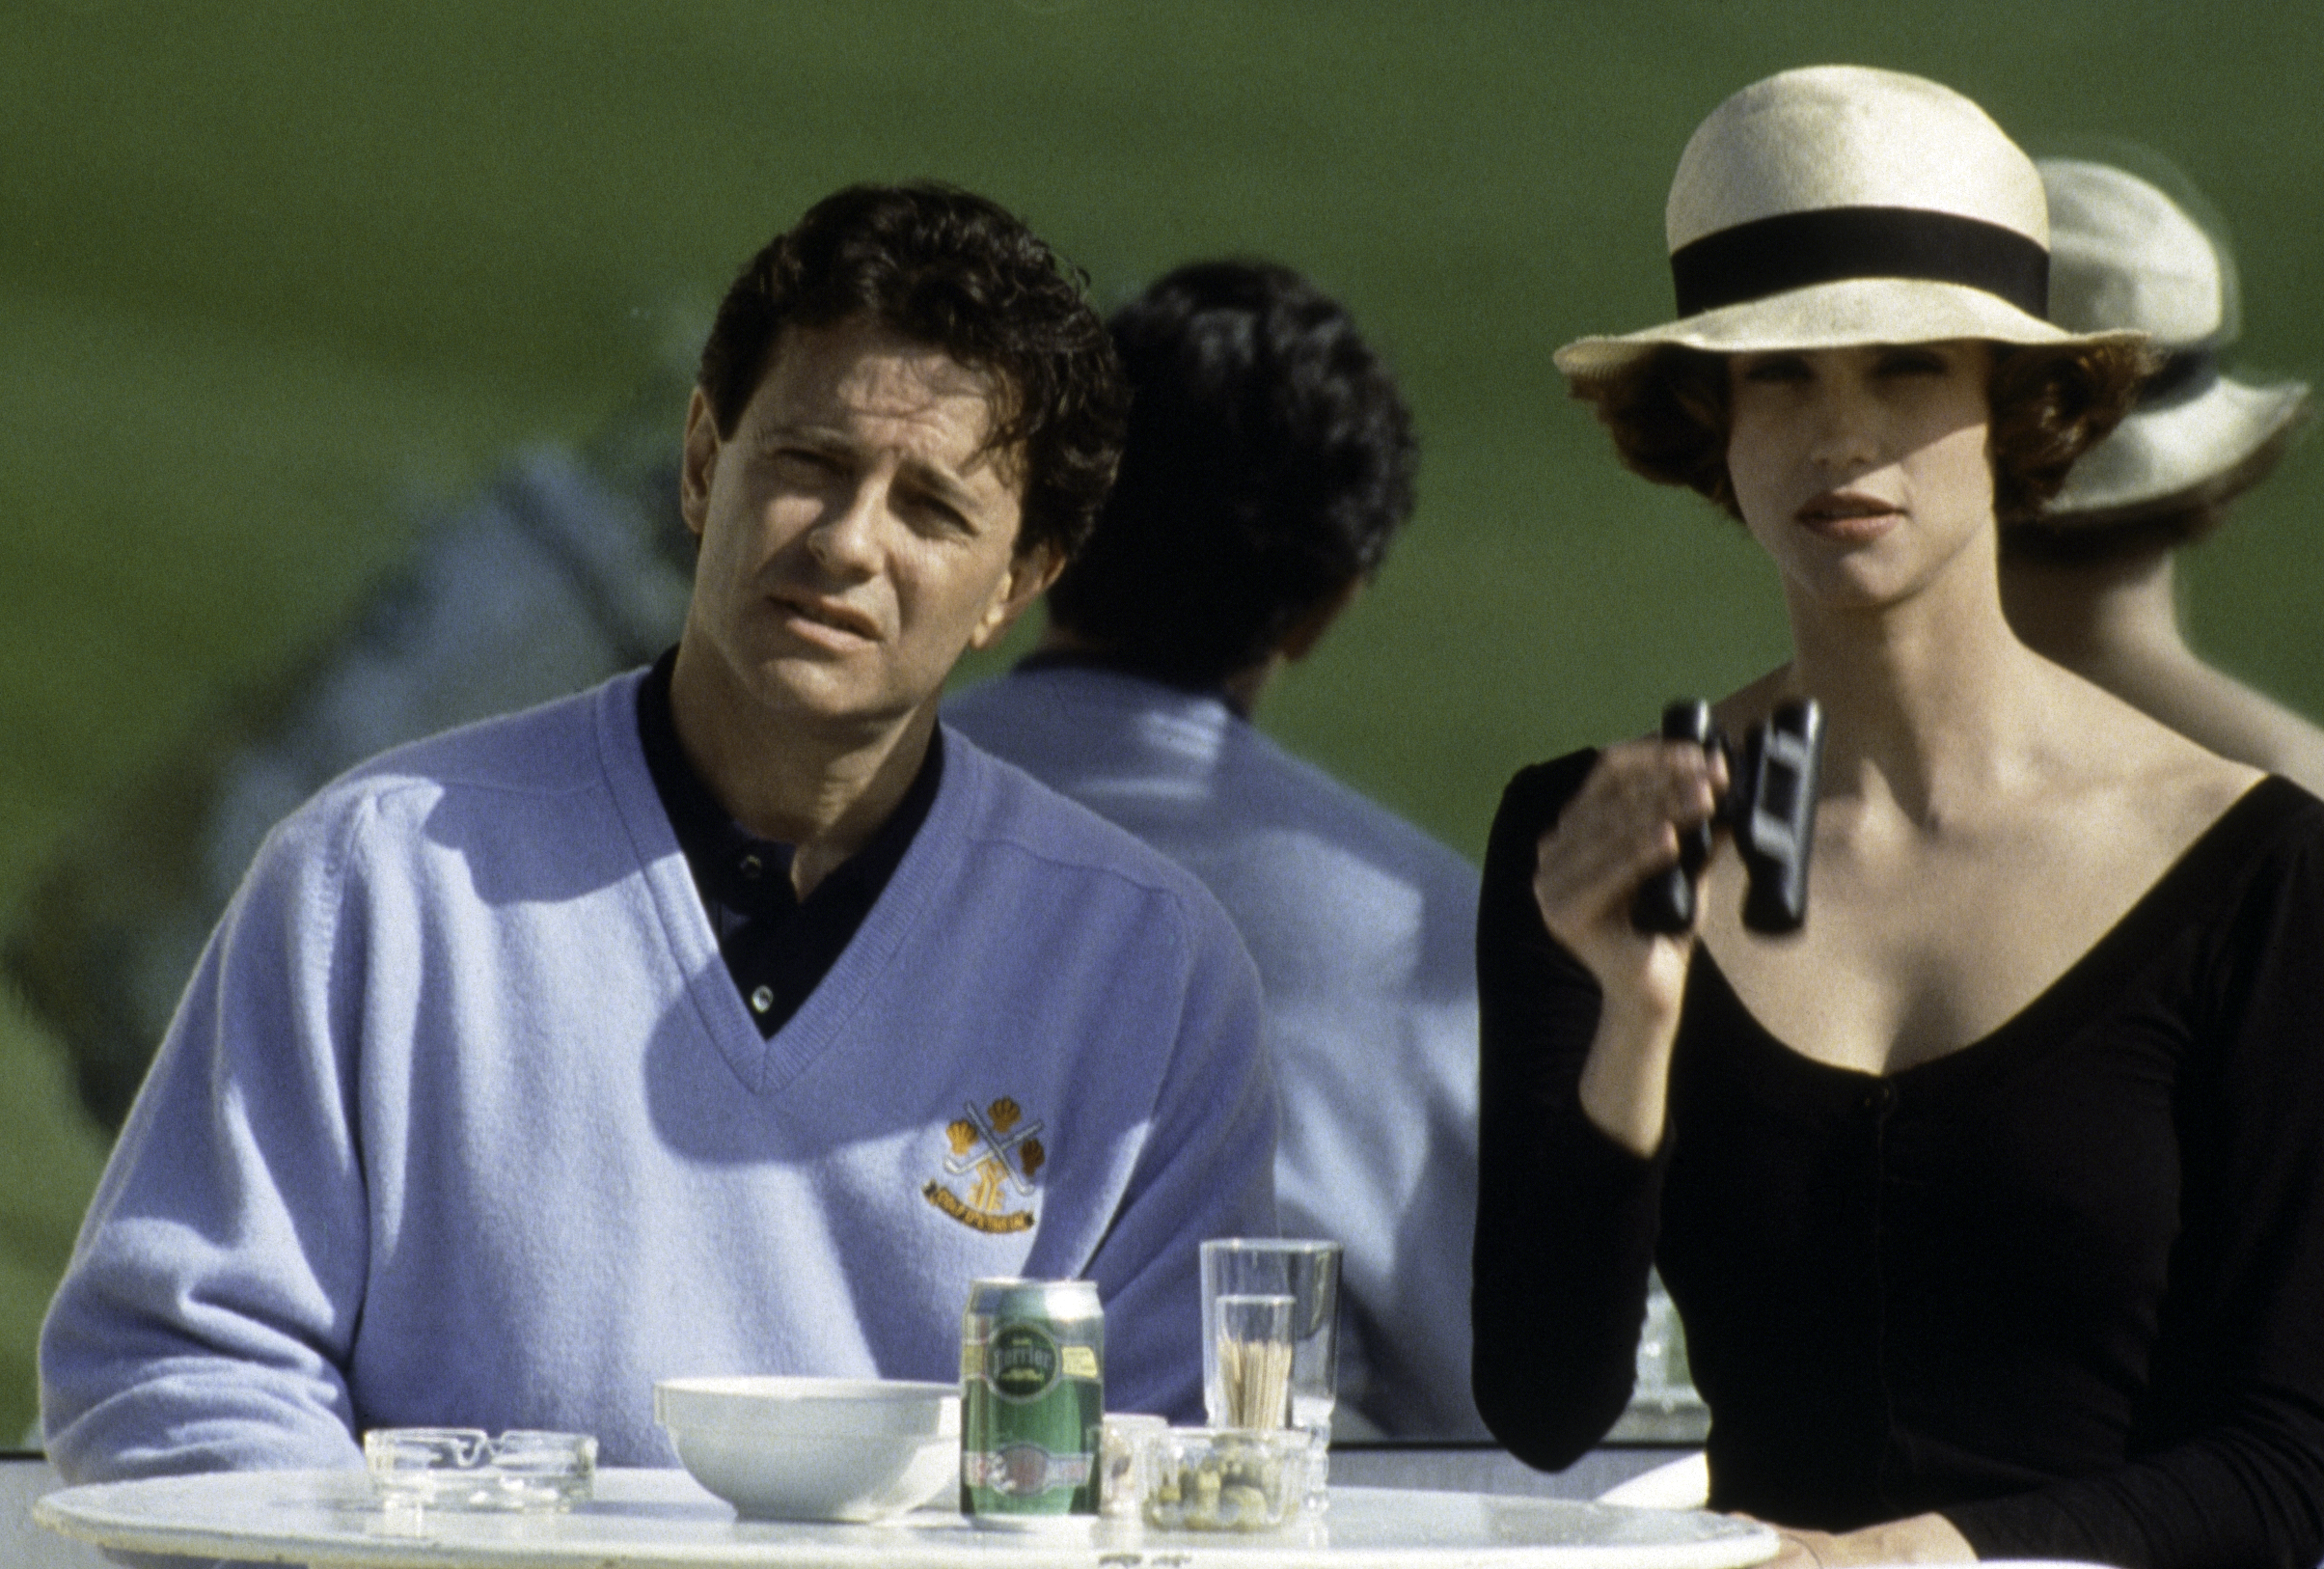 Francis Huster and Alessandra Martines in Tout ça... pour ça! (1993)